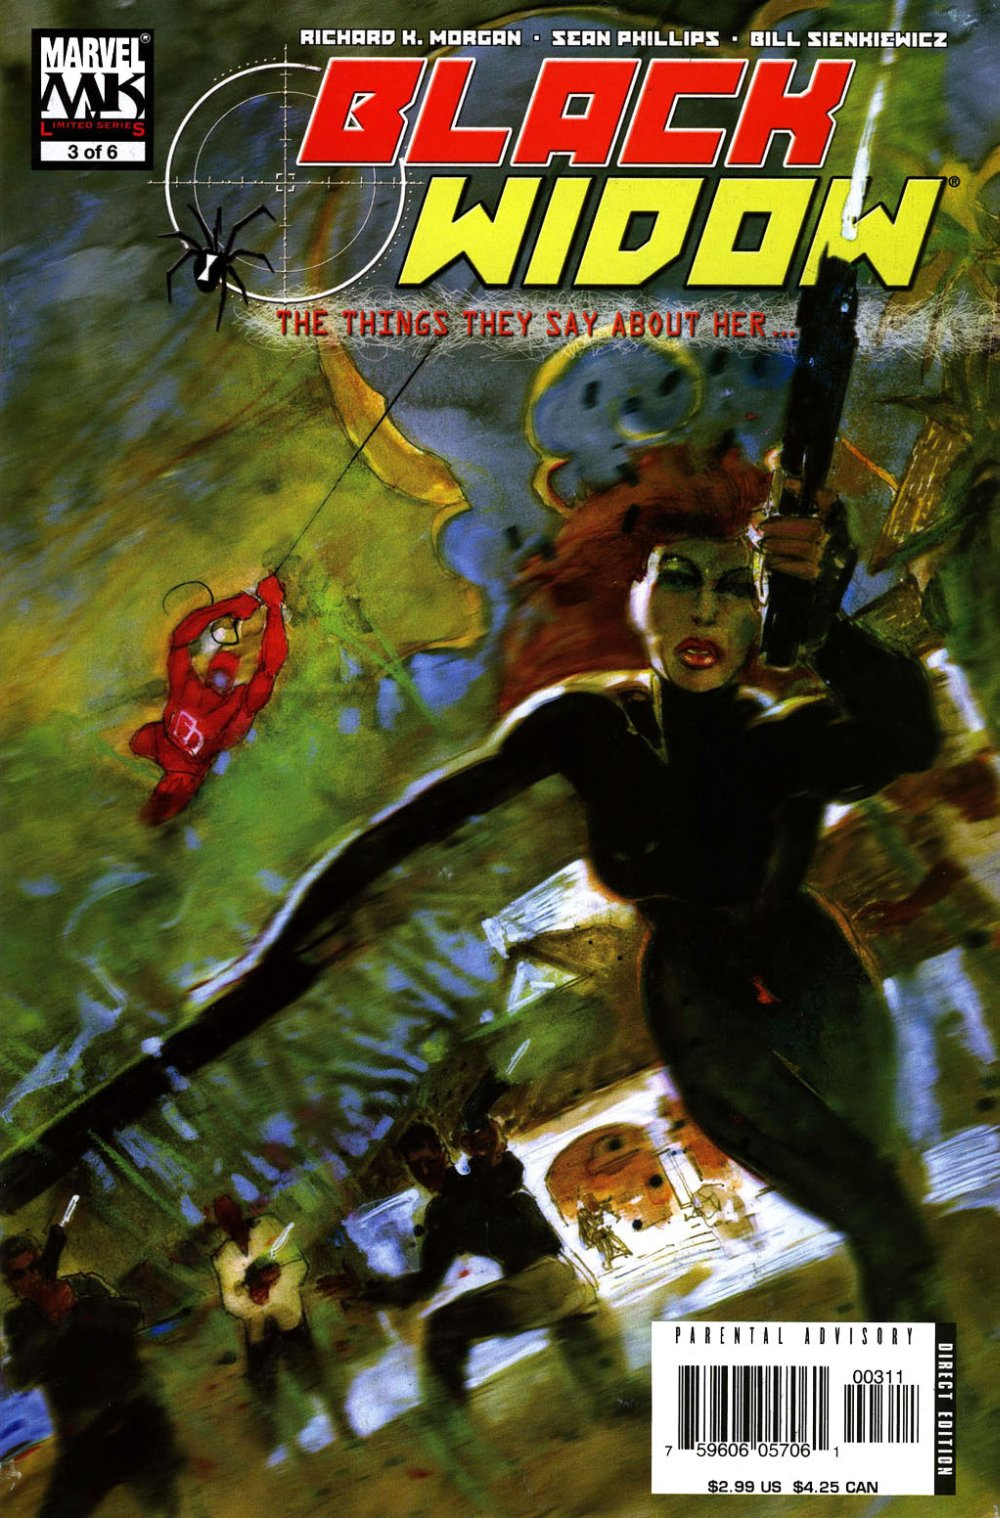 Black Widow- The Things They Say About Her [Marvel] Mini 1 0003.JPG